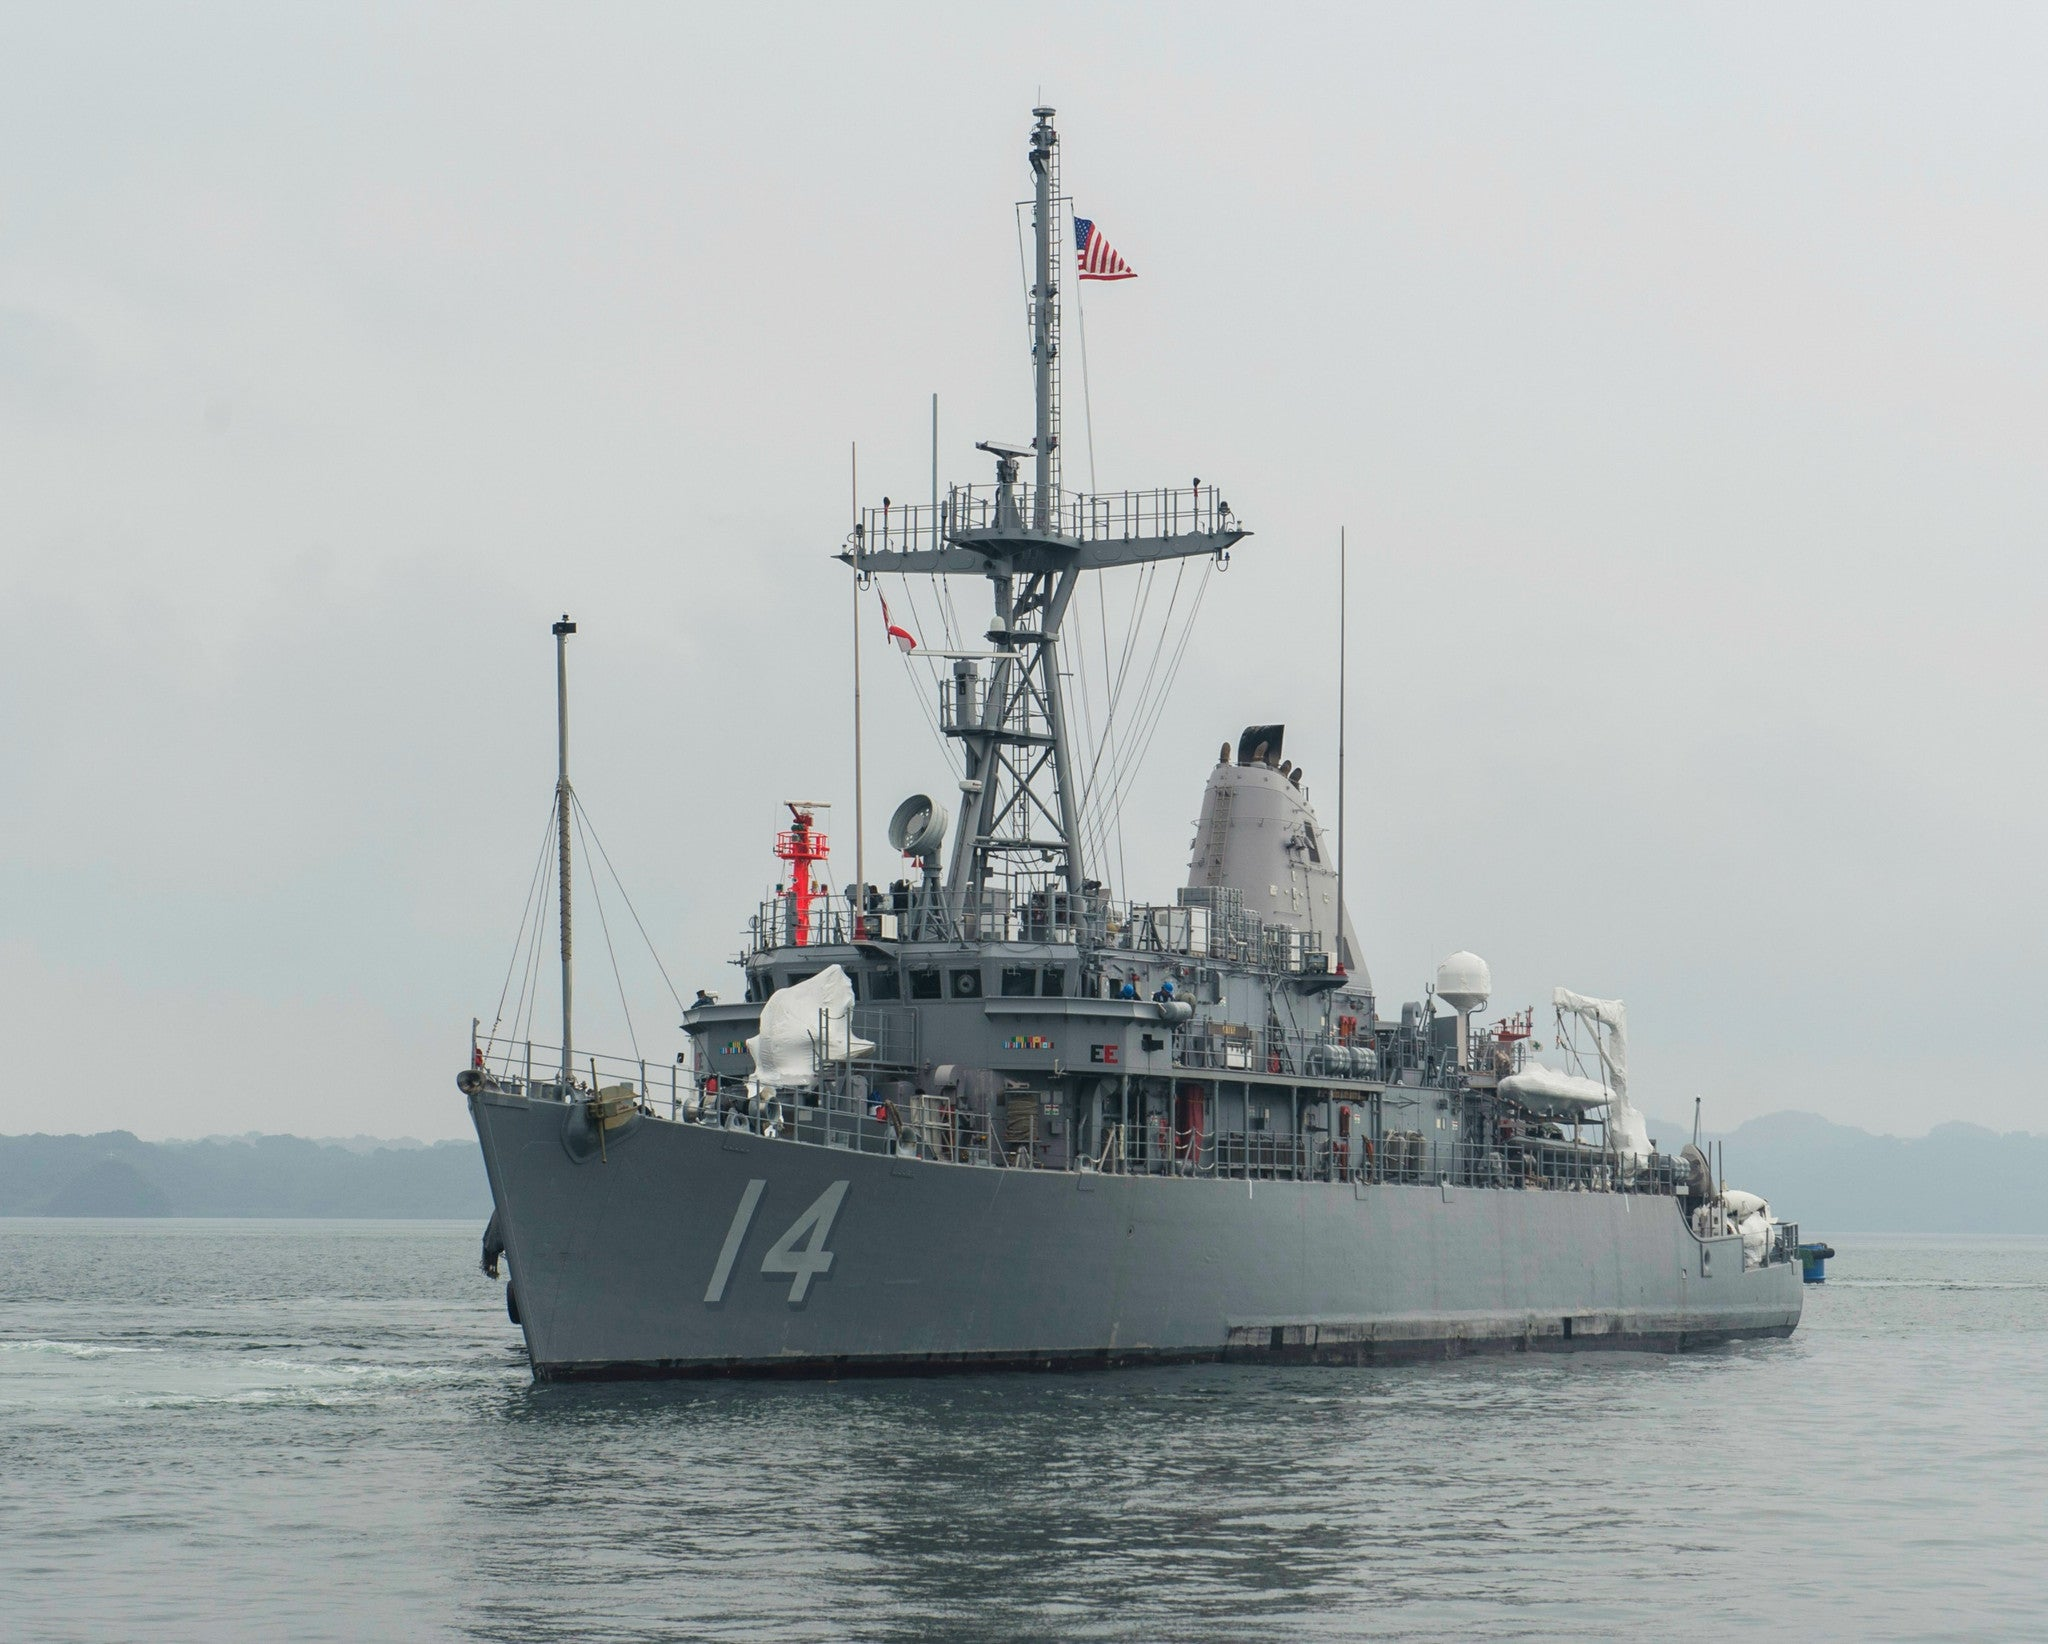 "Mine Countermeasure Ship USS Chief MCM-14 Sasebo, Japan July 3, 2014 - 8 x 10"" Photograph"